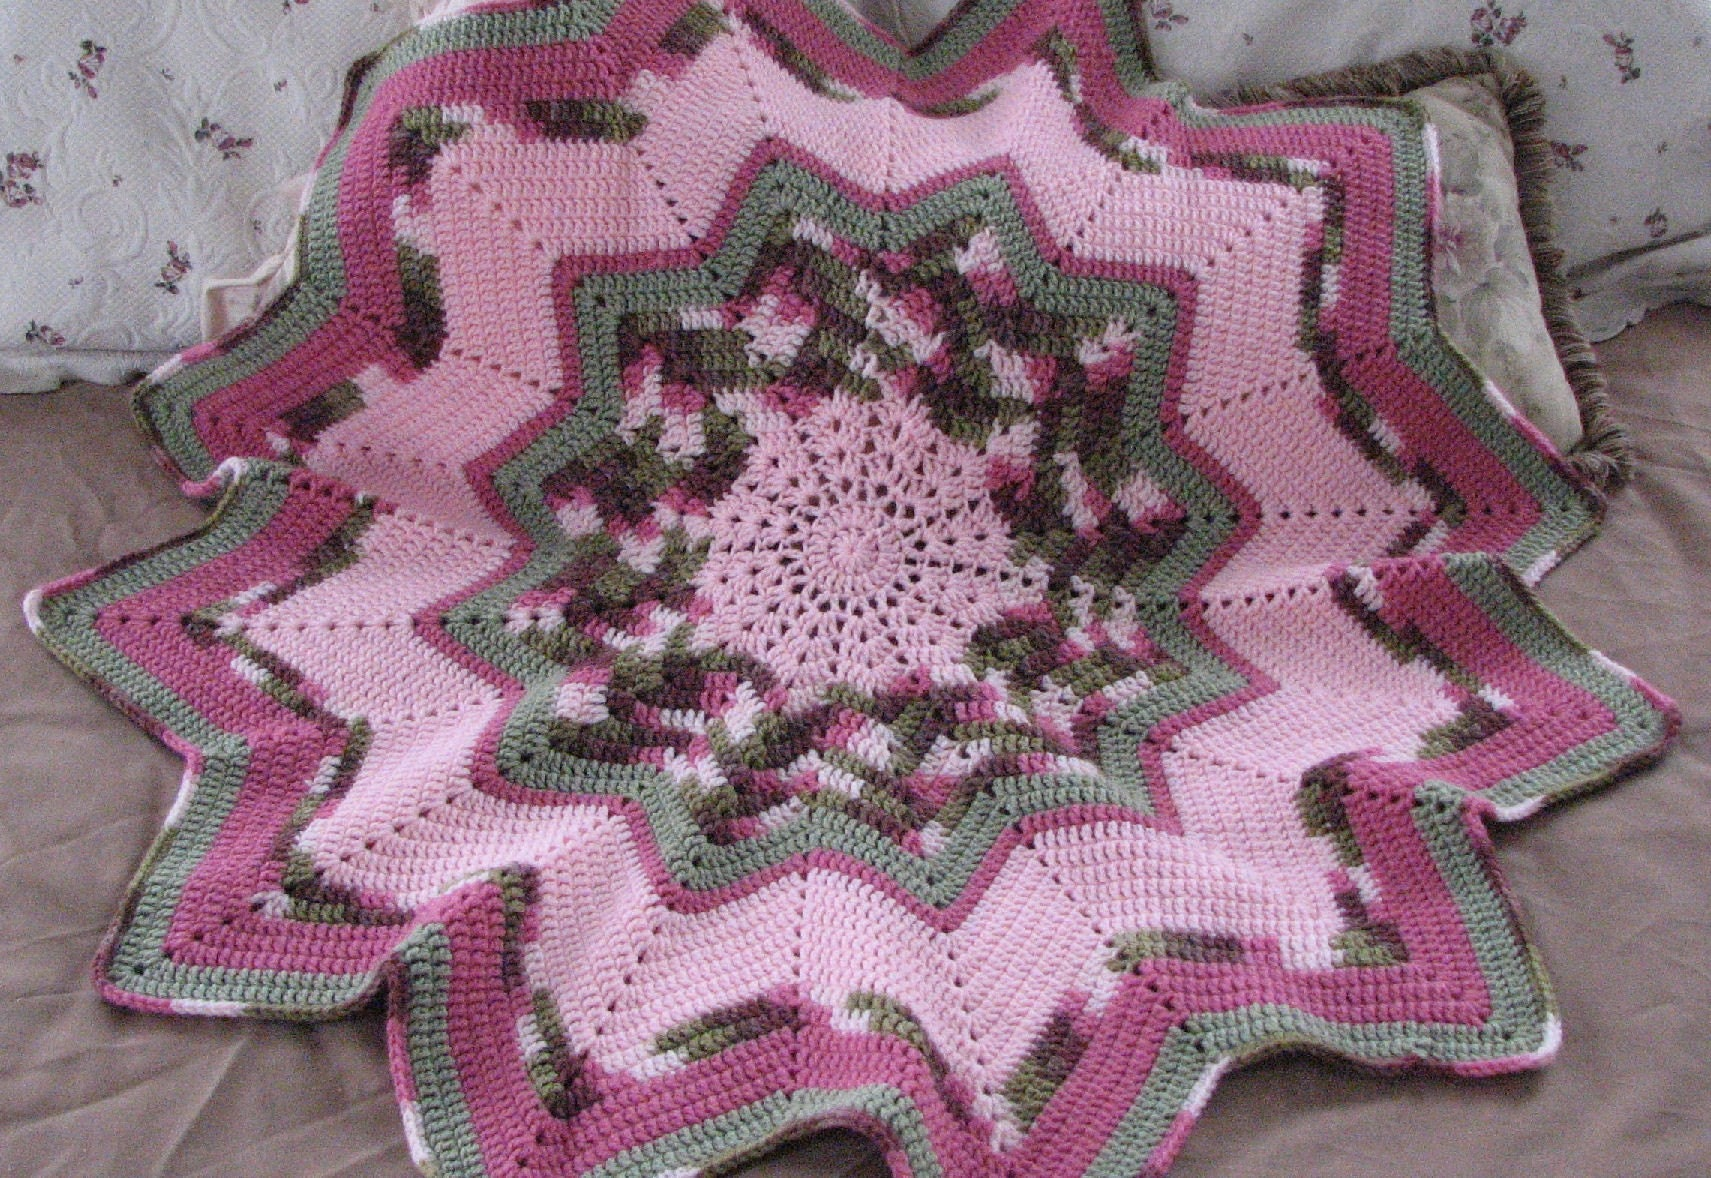 How to Increase an Afghan to a Queen Size Bedspread on a Crochet